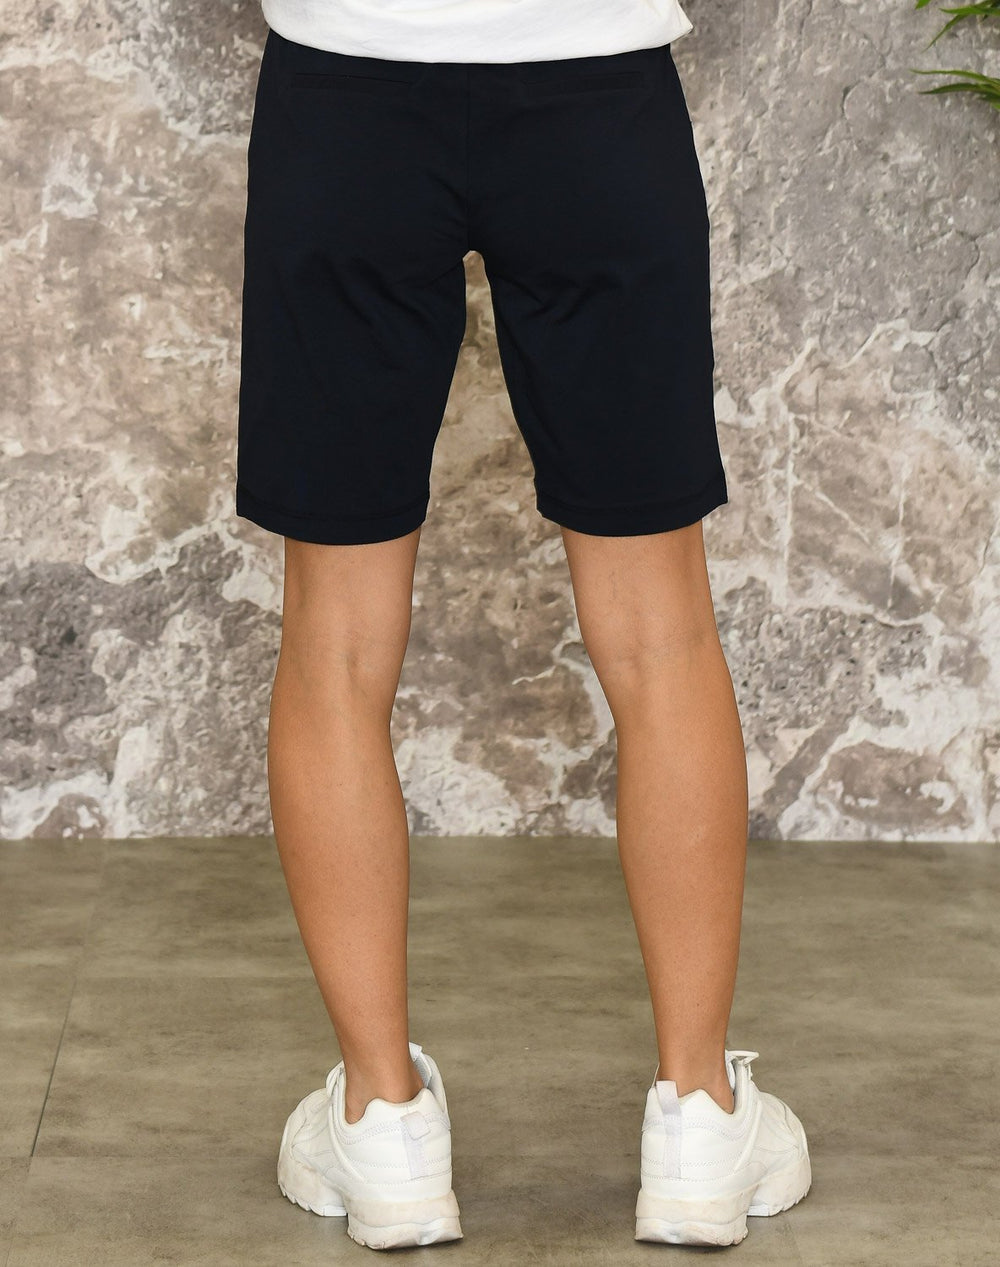 Kaffe KAjillian Vilja bermuda shorts midnight marine - Online-Mode